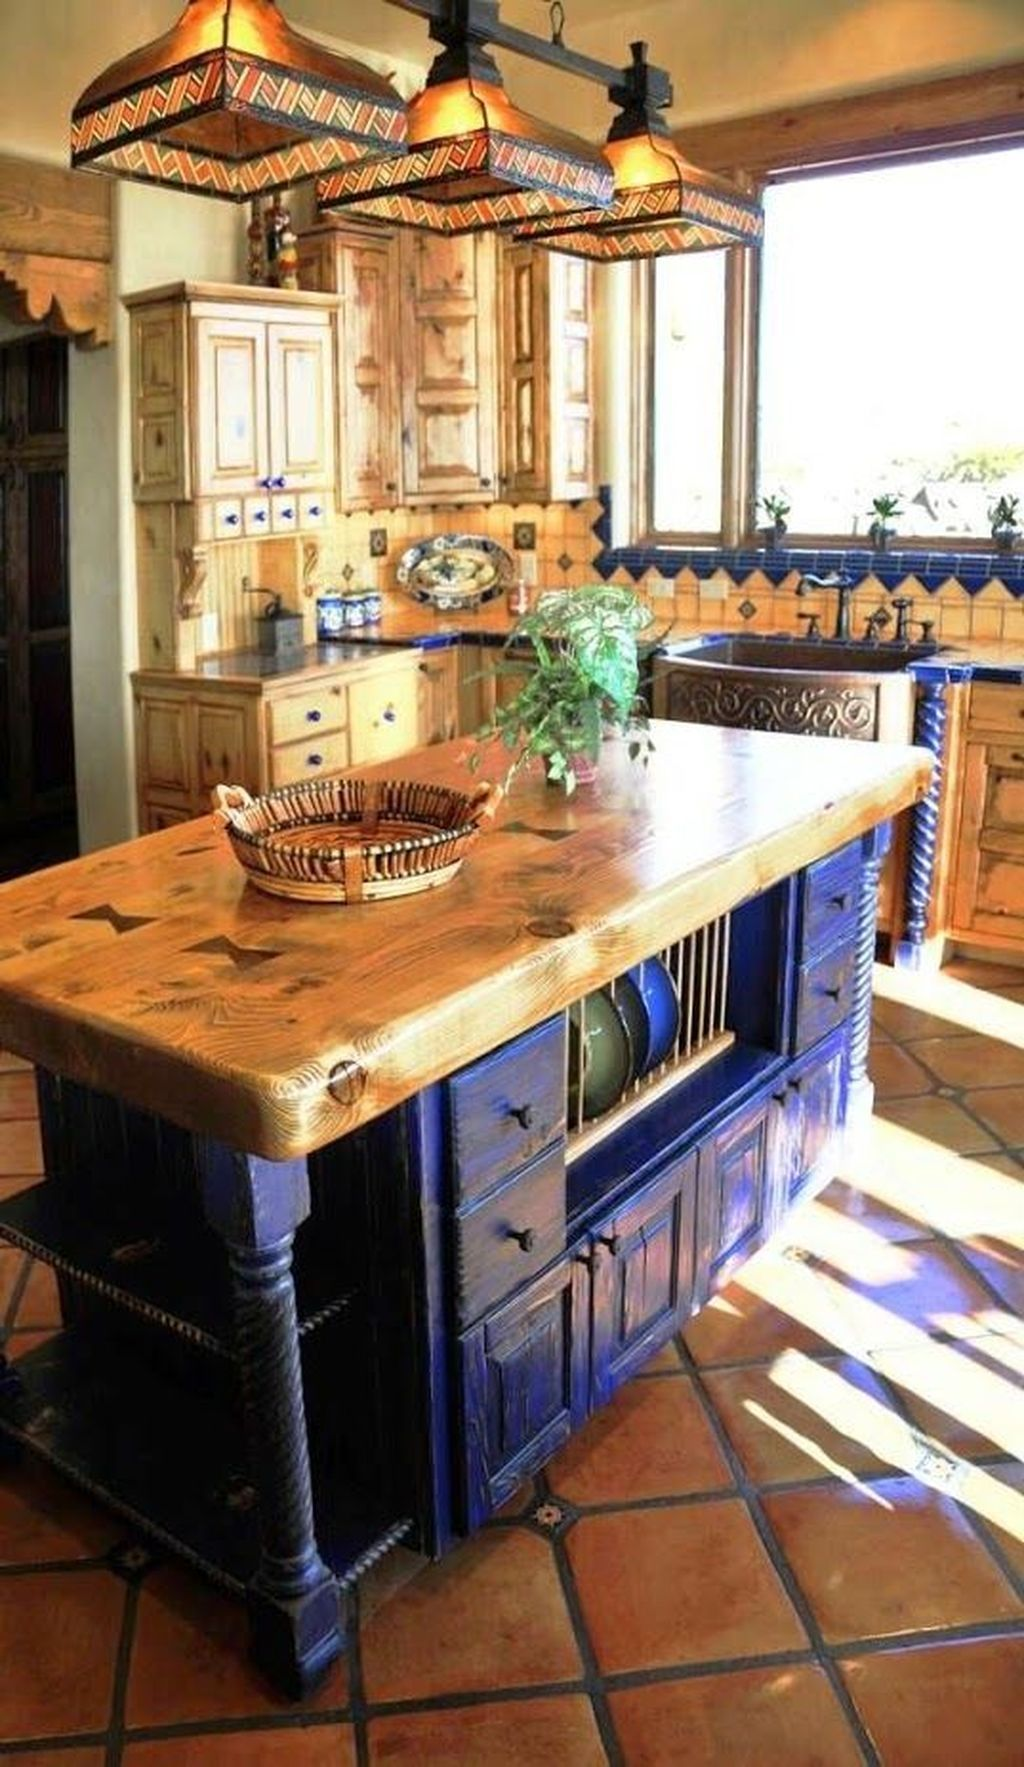 42 Fabulous Rustic Kitchen Island Ideas Best For Farmhouse Theme Small Kitchen Design Layout Simple Kitchen Design Kitchen Design Small